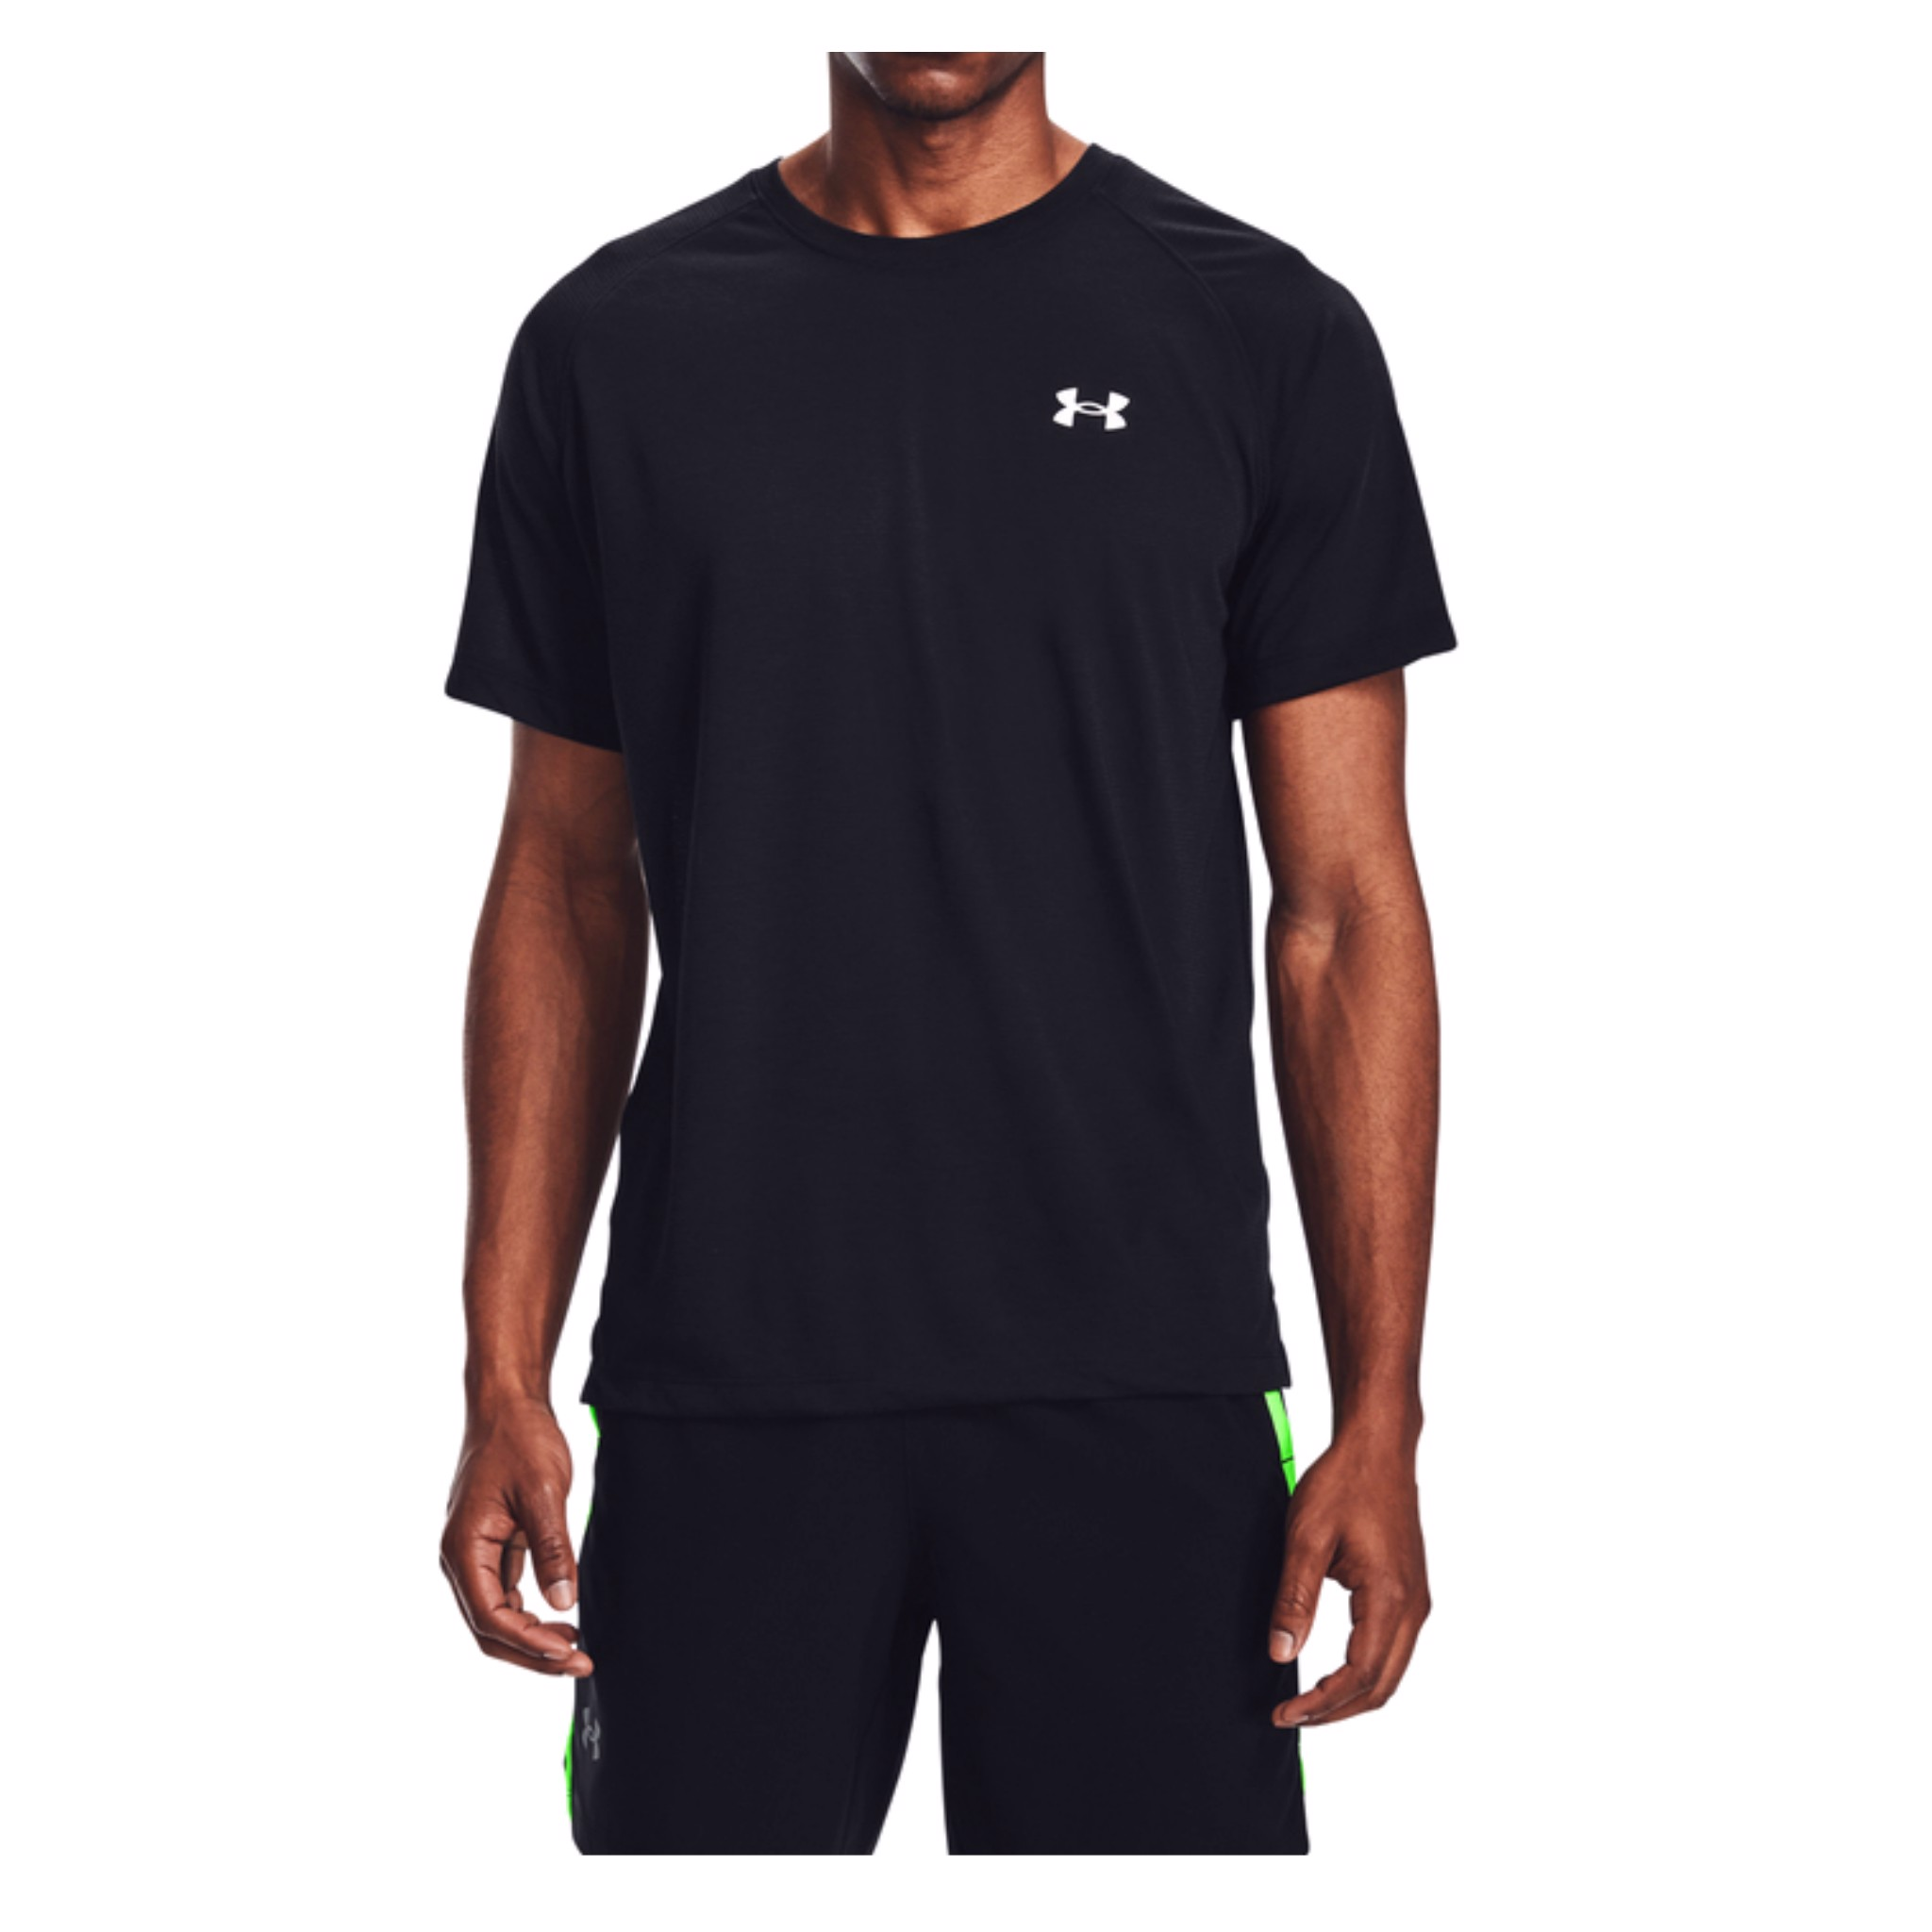 Under Armour - Áo thun nam Tee Streaker Running SS21-1361